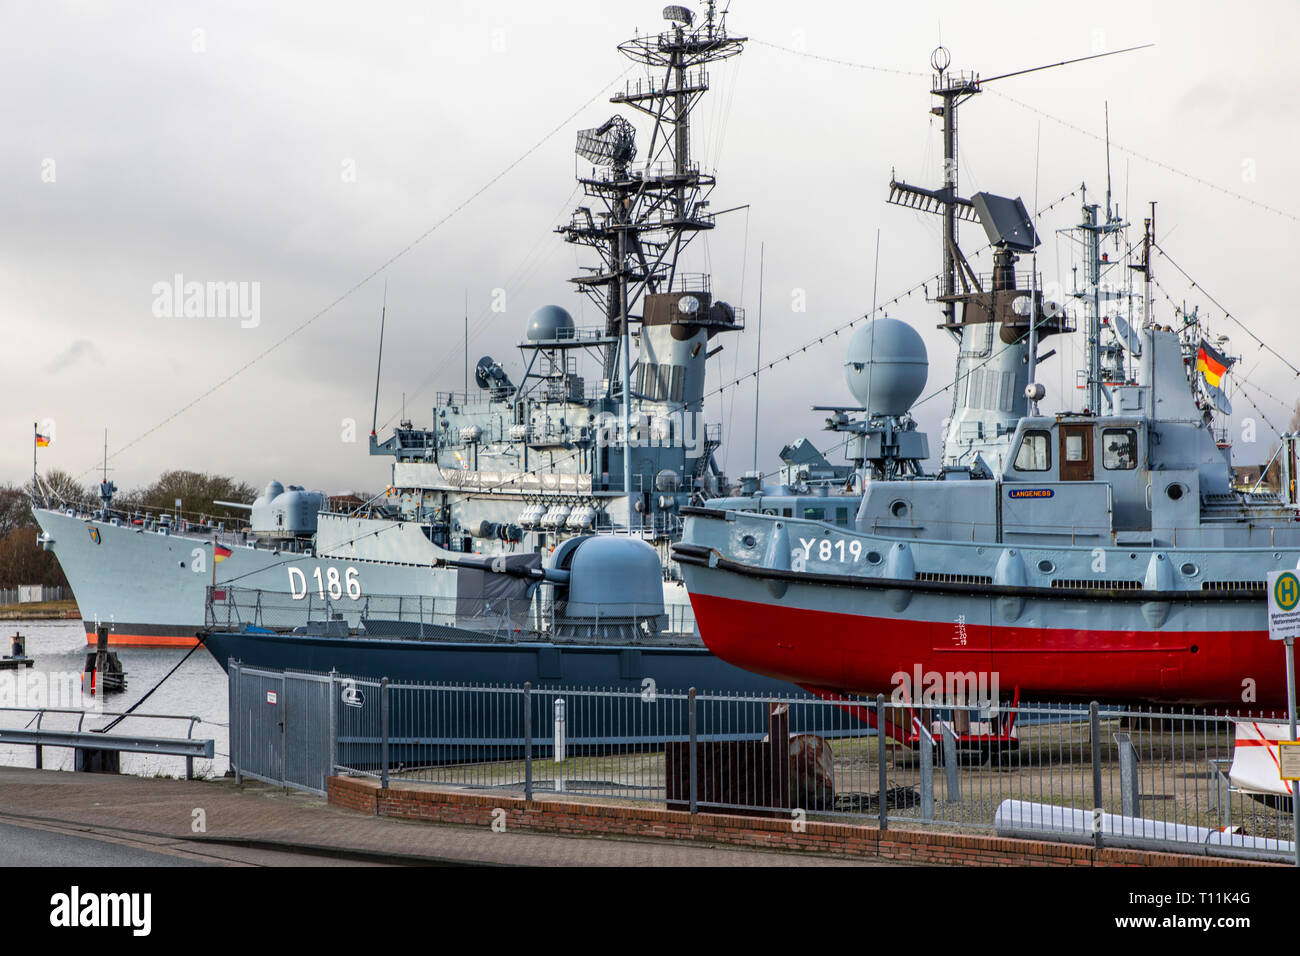 Wilhelmshaven, German Navy Museum, on the south beach, history of the German Navy, warships of the German Navy and the former NVA, destroyer Mölders o - Stock Image